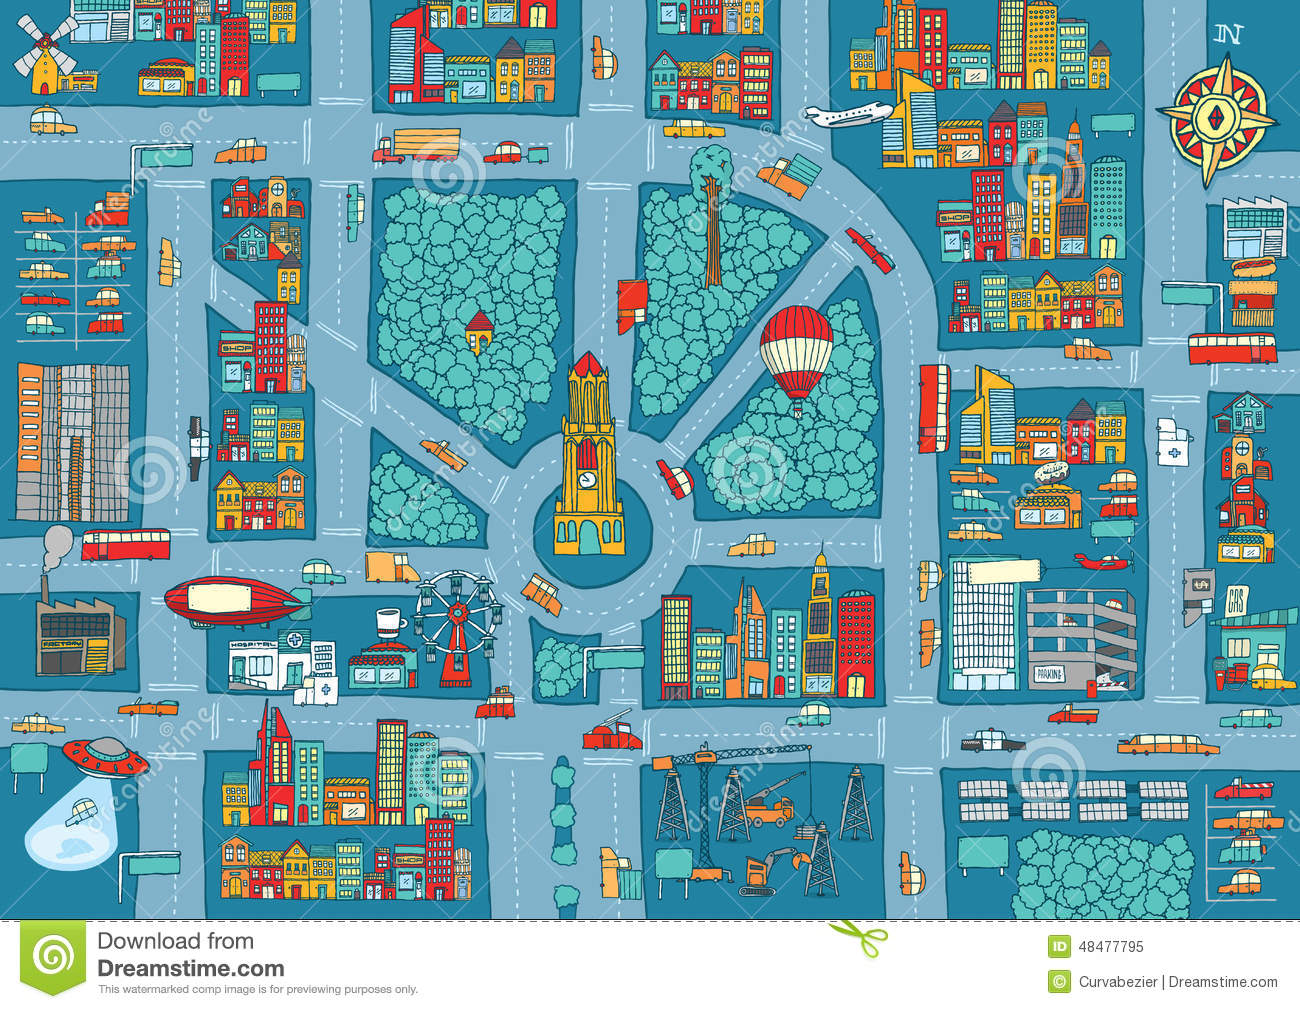 Complex busy city map